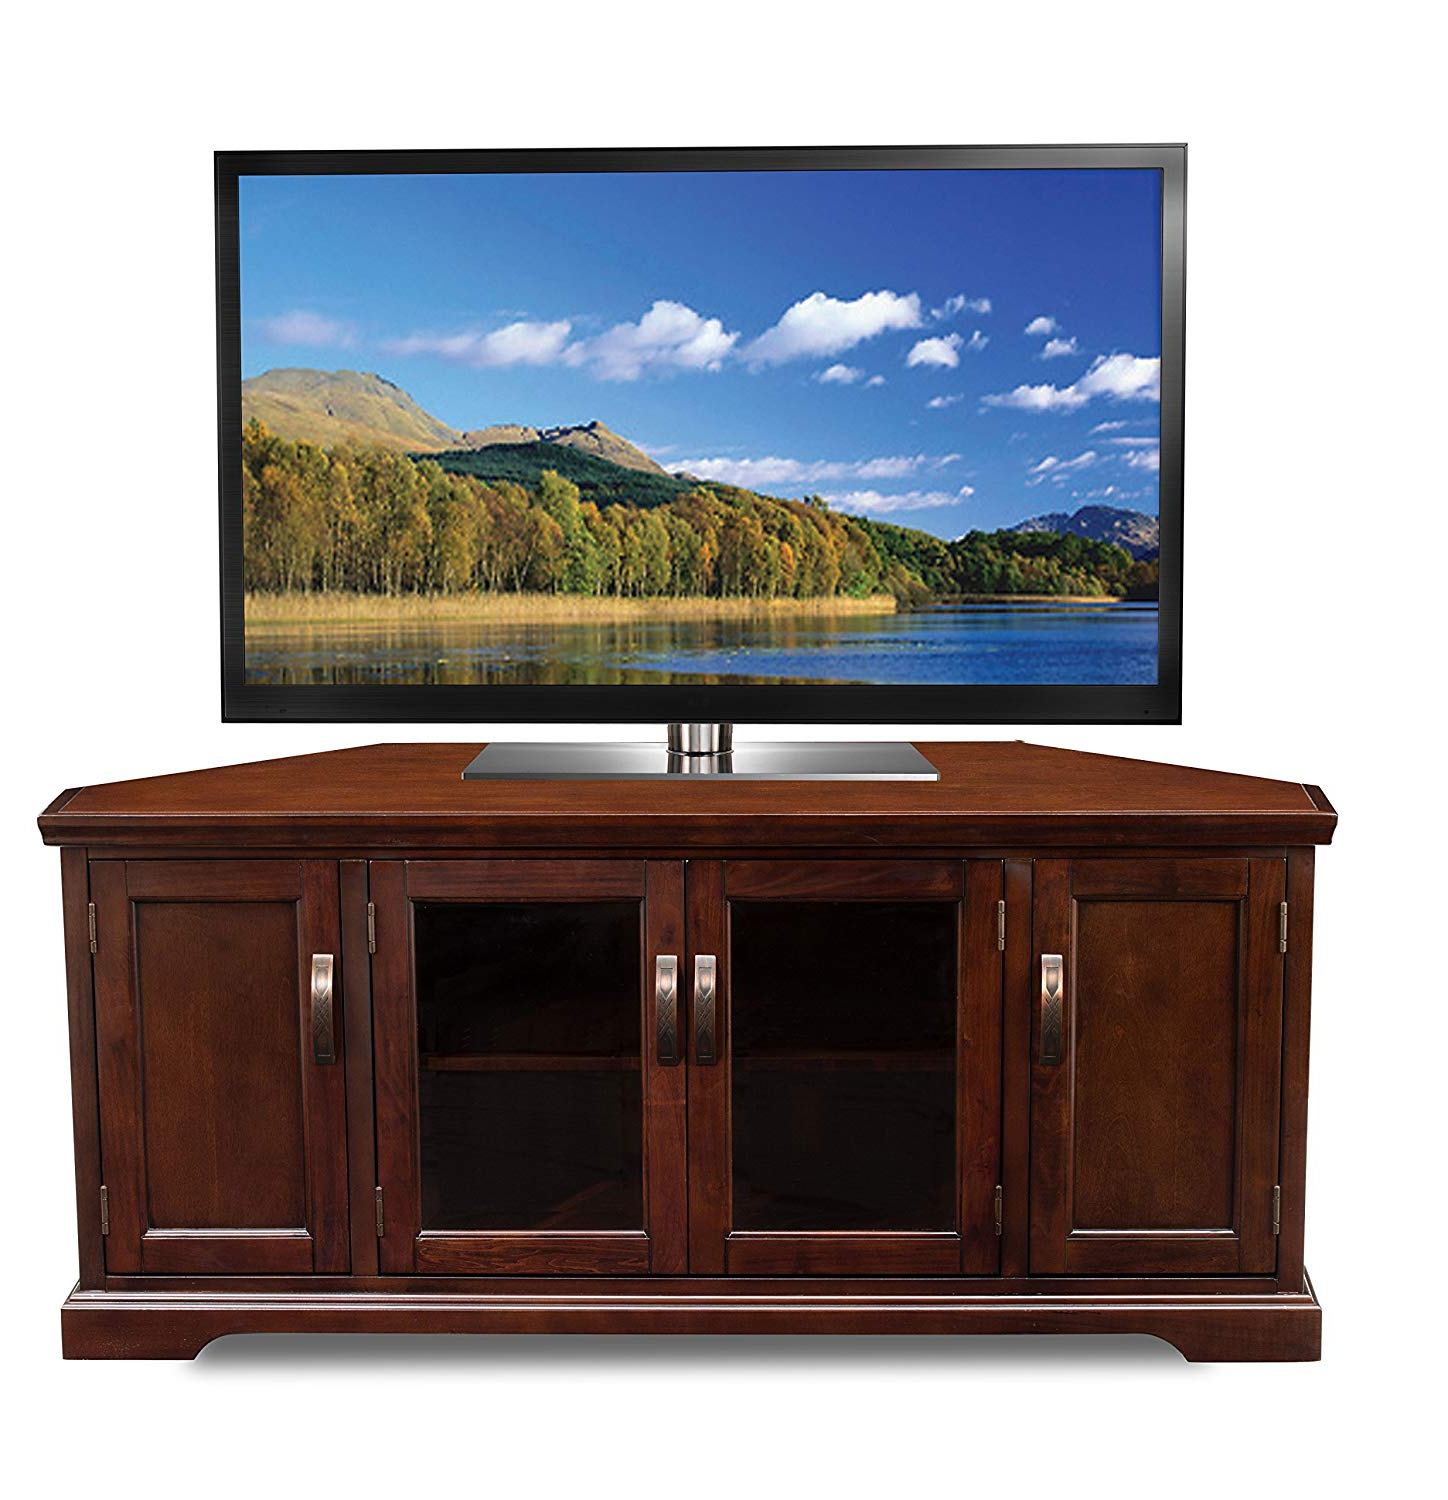 "Corner Tv Stands For 60 Inch Tv With Regard To Current Leick 81386 Chocolate Cherry Corner Tv Stand, 60"": Amazon (View 4 of 20)"